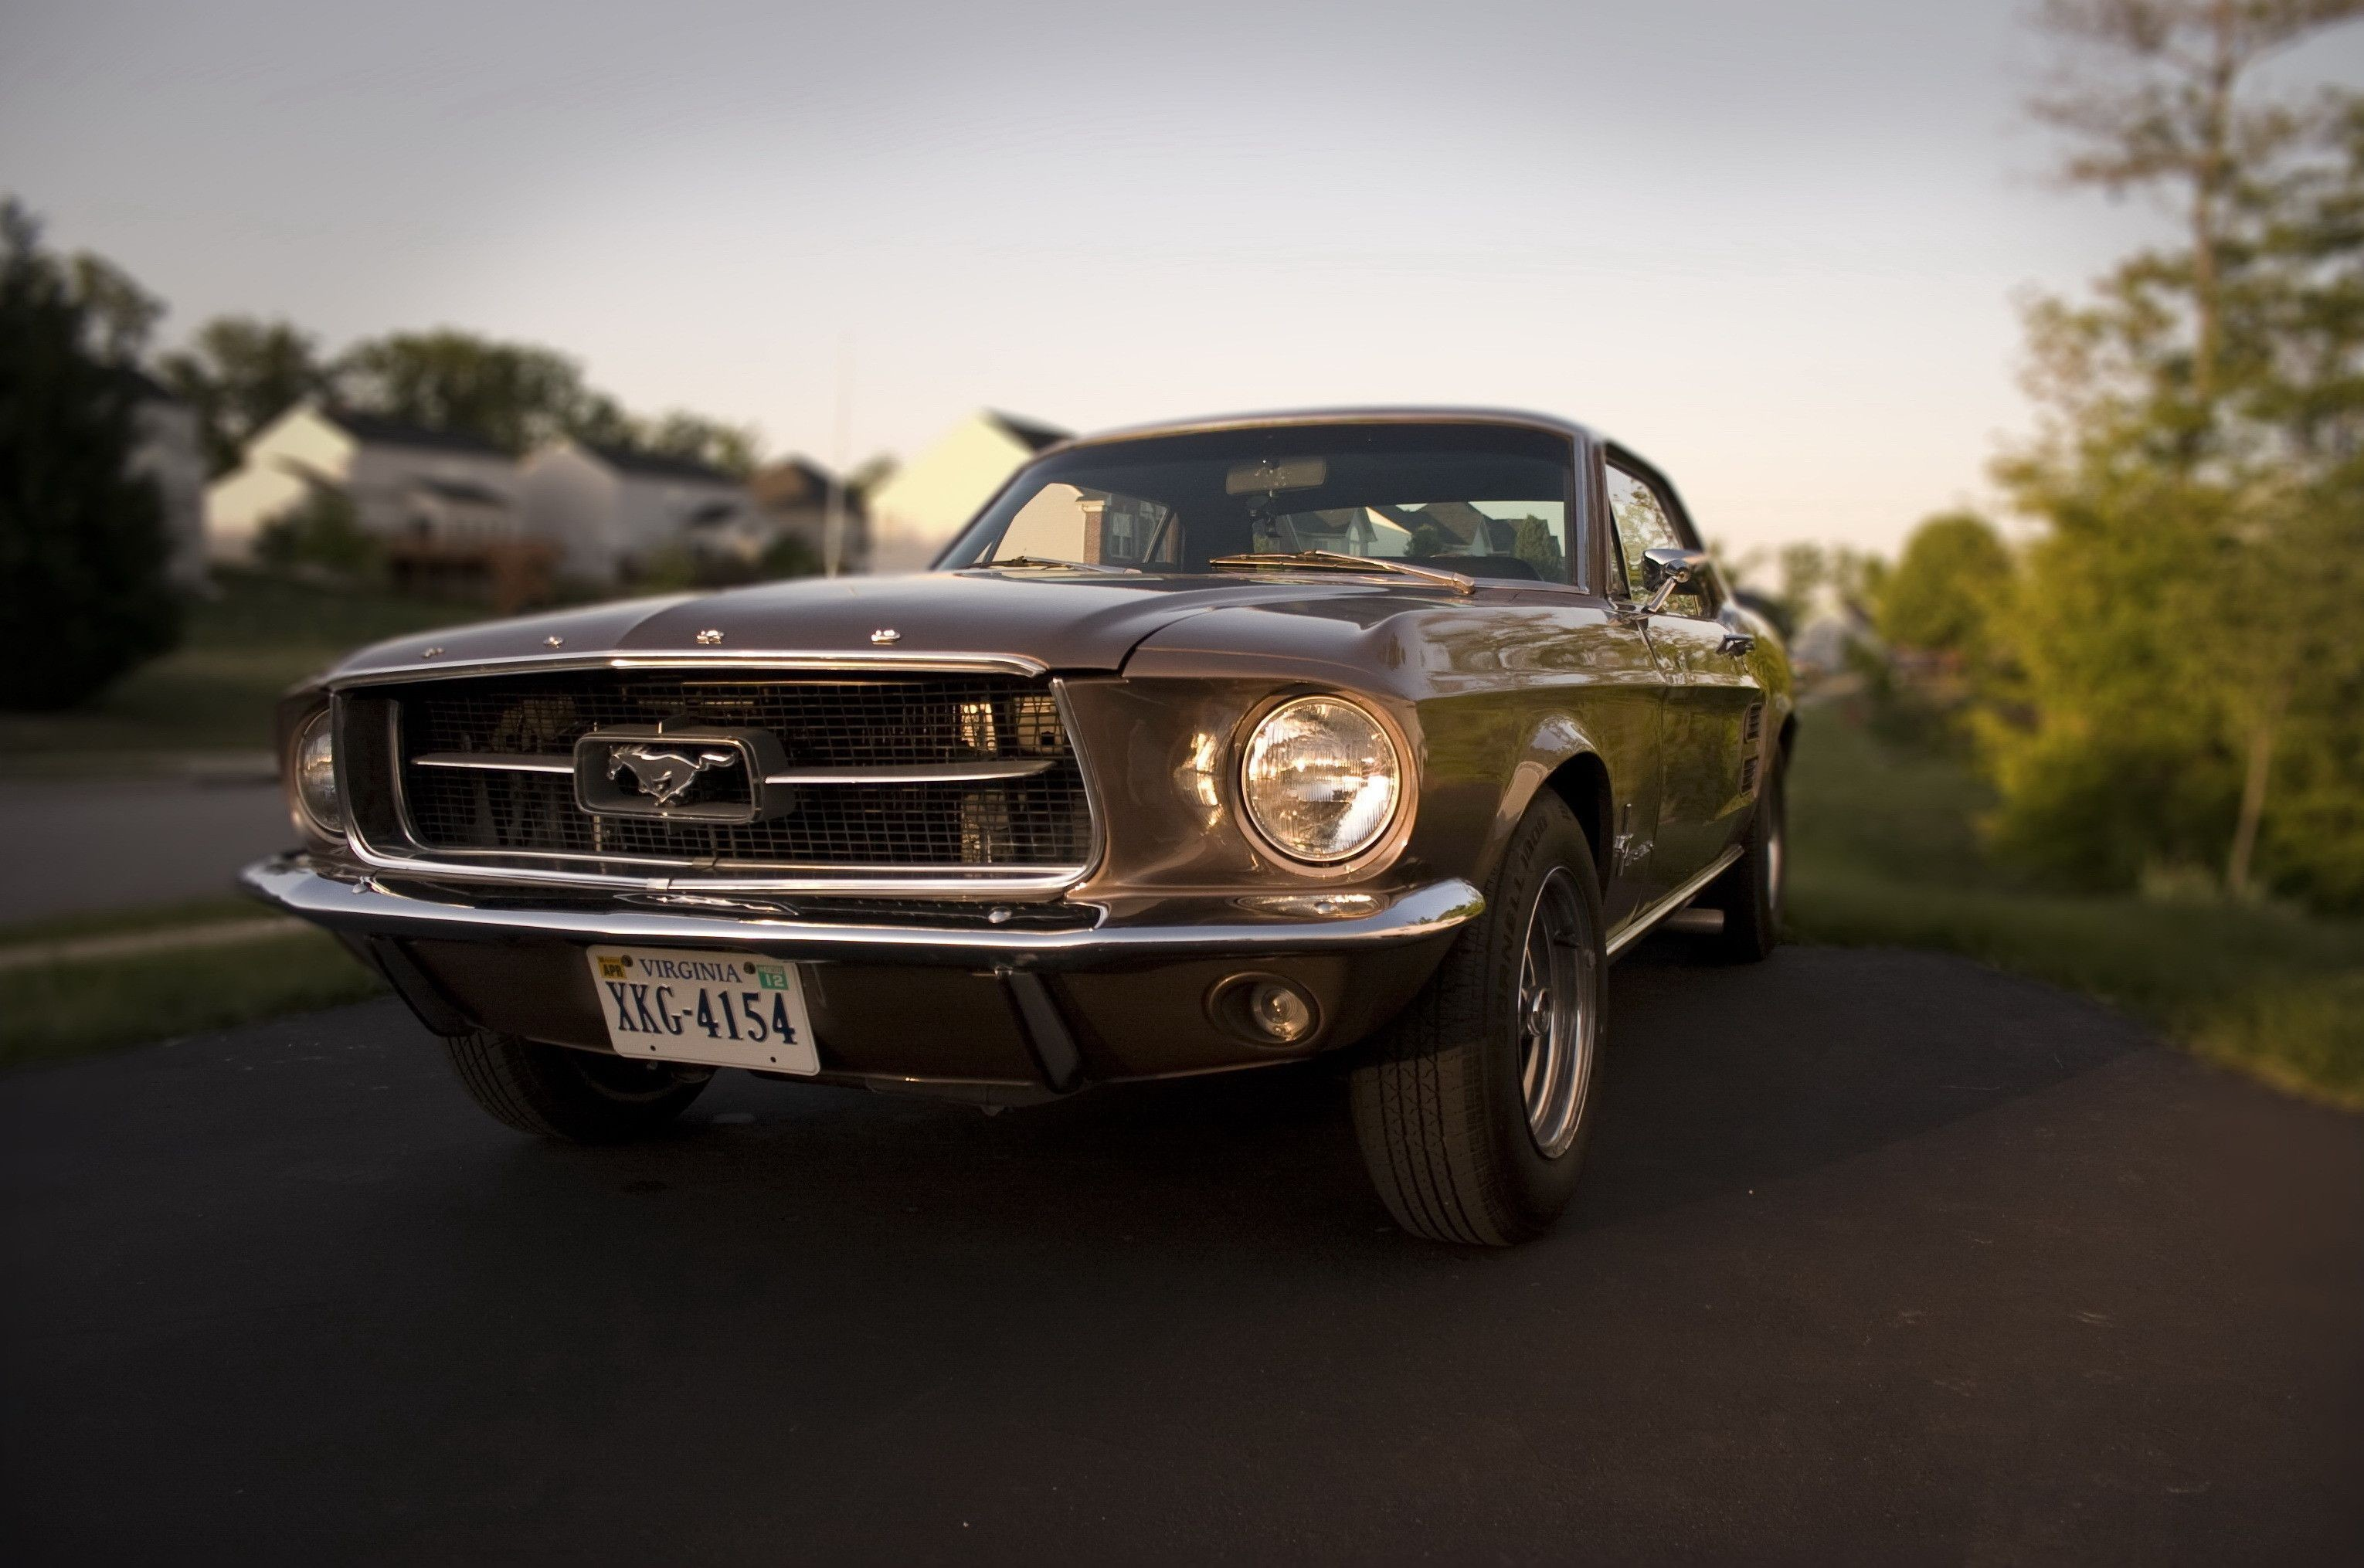 Res: 3060x2030, 4K Wallpaper Ford Ford Mustang 1967 3060×2030Autos and Vehicles .